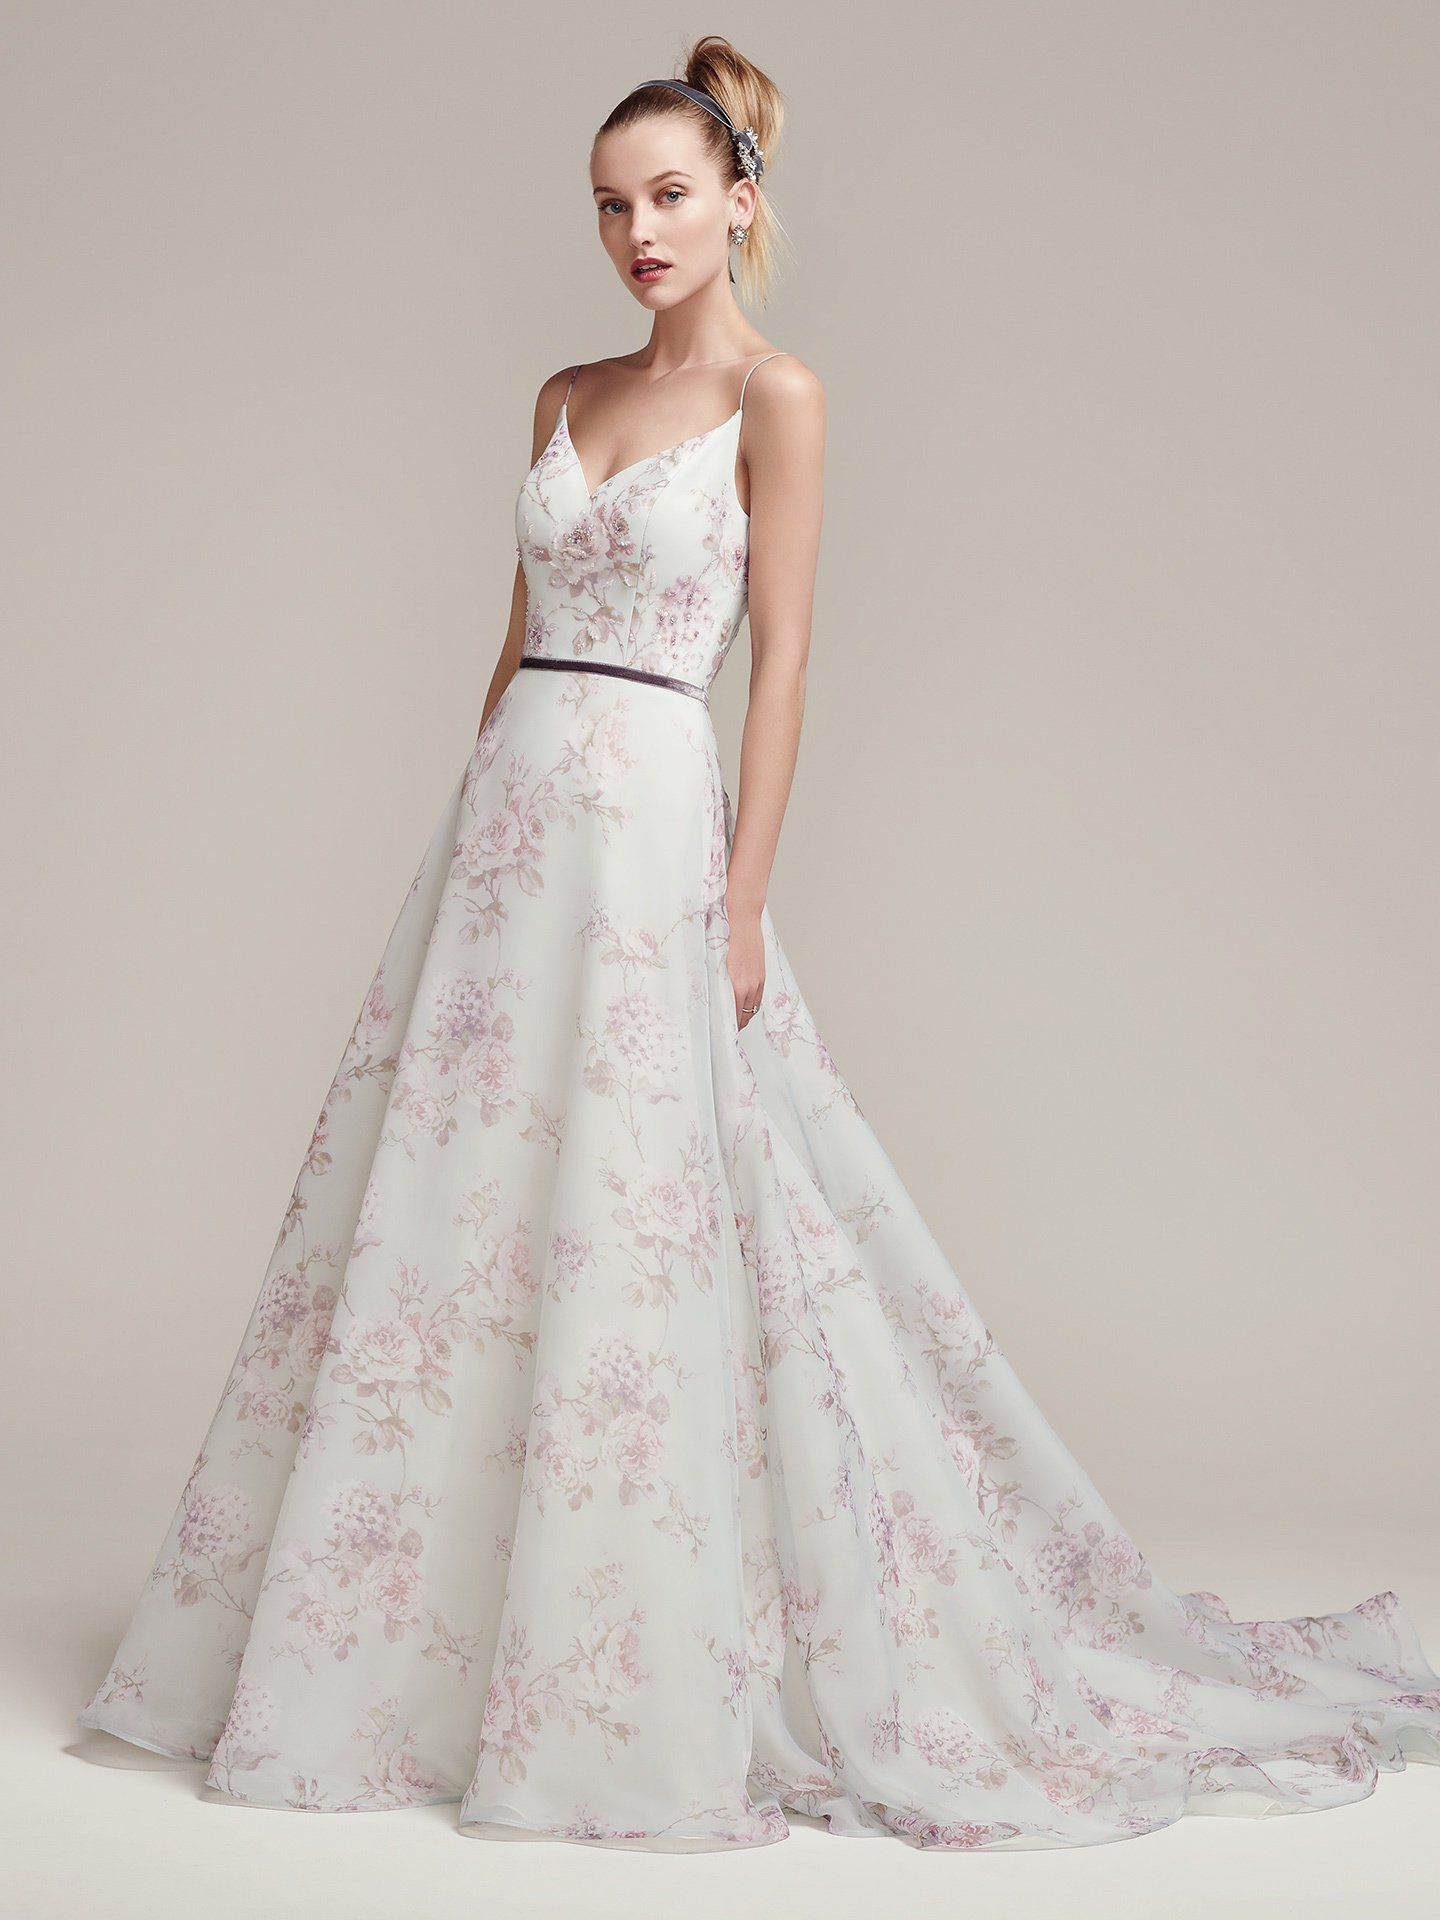 ede3de447560 Kira by #SotteroandMidgley | Floral printed chiffon full A-line wedding  dress, with ultra-feminine spaghetti straps and V-neckline and plunging  back.